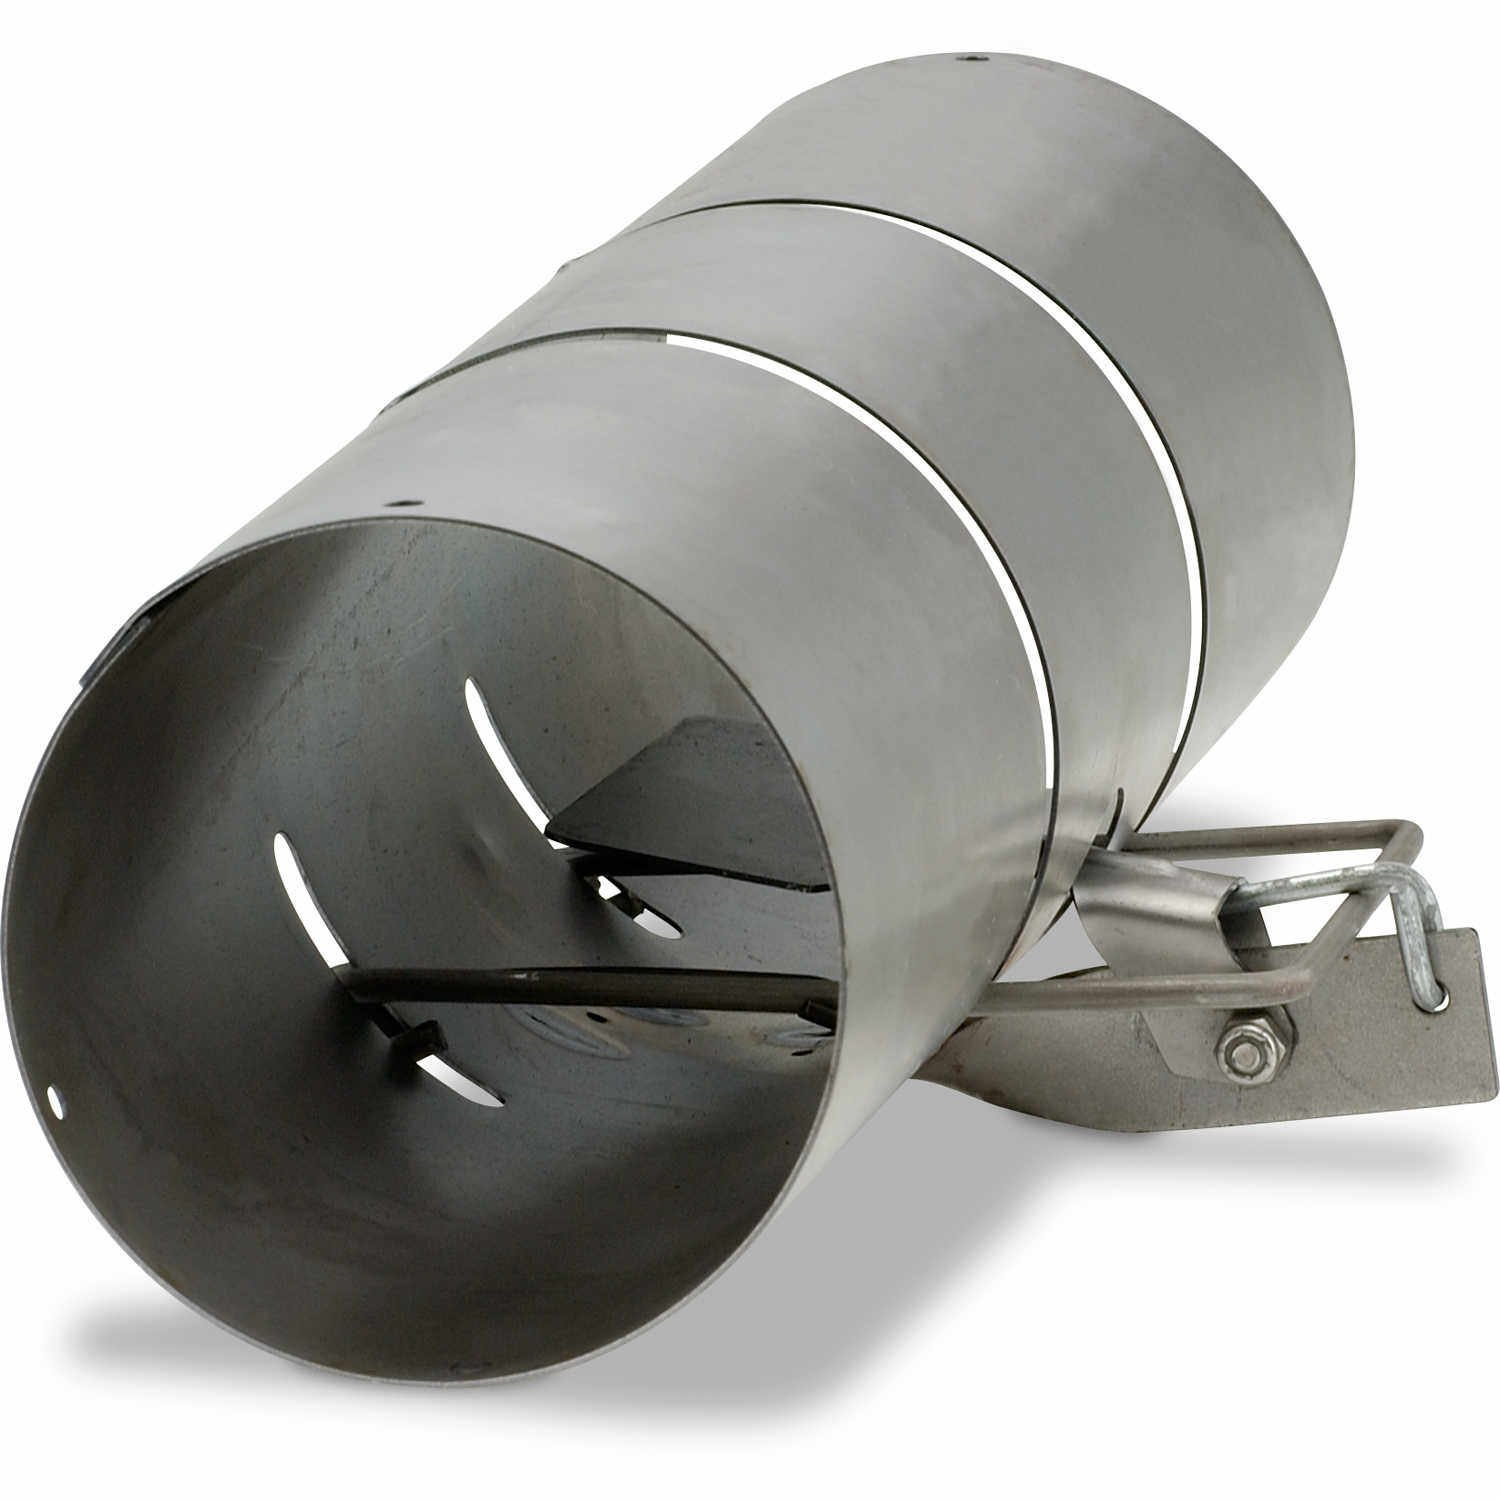 Tube Trap Squirrel Trap (Standard) by Forestry Suppliers (Image #2)